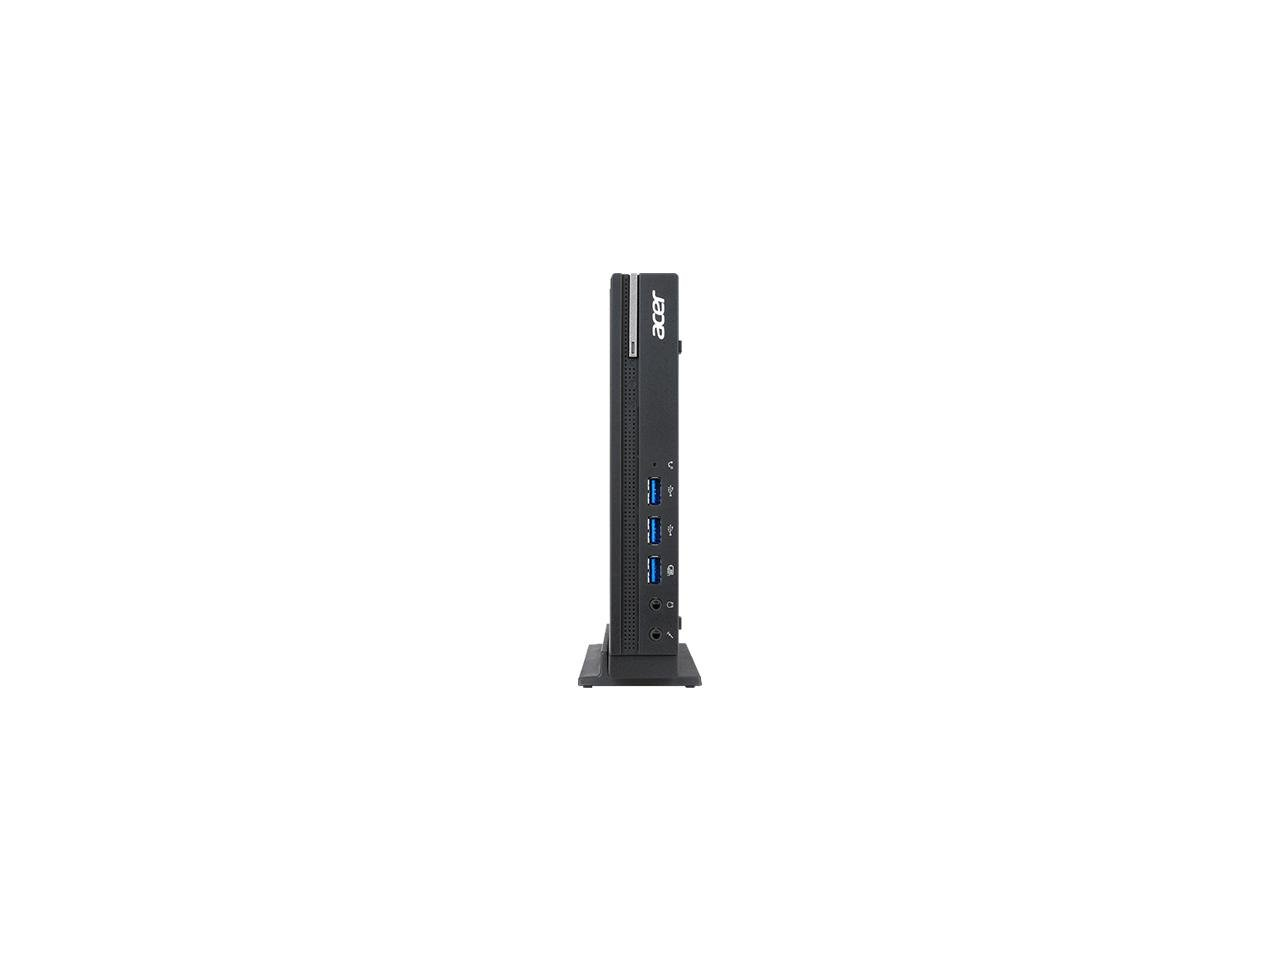 2017 Newest High Performance Acer Veriton N Small Form Factor Business Desktop - Intel Quad-core i7-6700T Up to 3.6GHz, 16GB DDR4, 1TB HDD, 1-Liter Design, Win 7/10 Pro (USB Keyboard/Mouse Included)